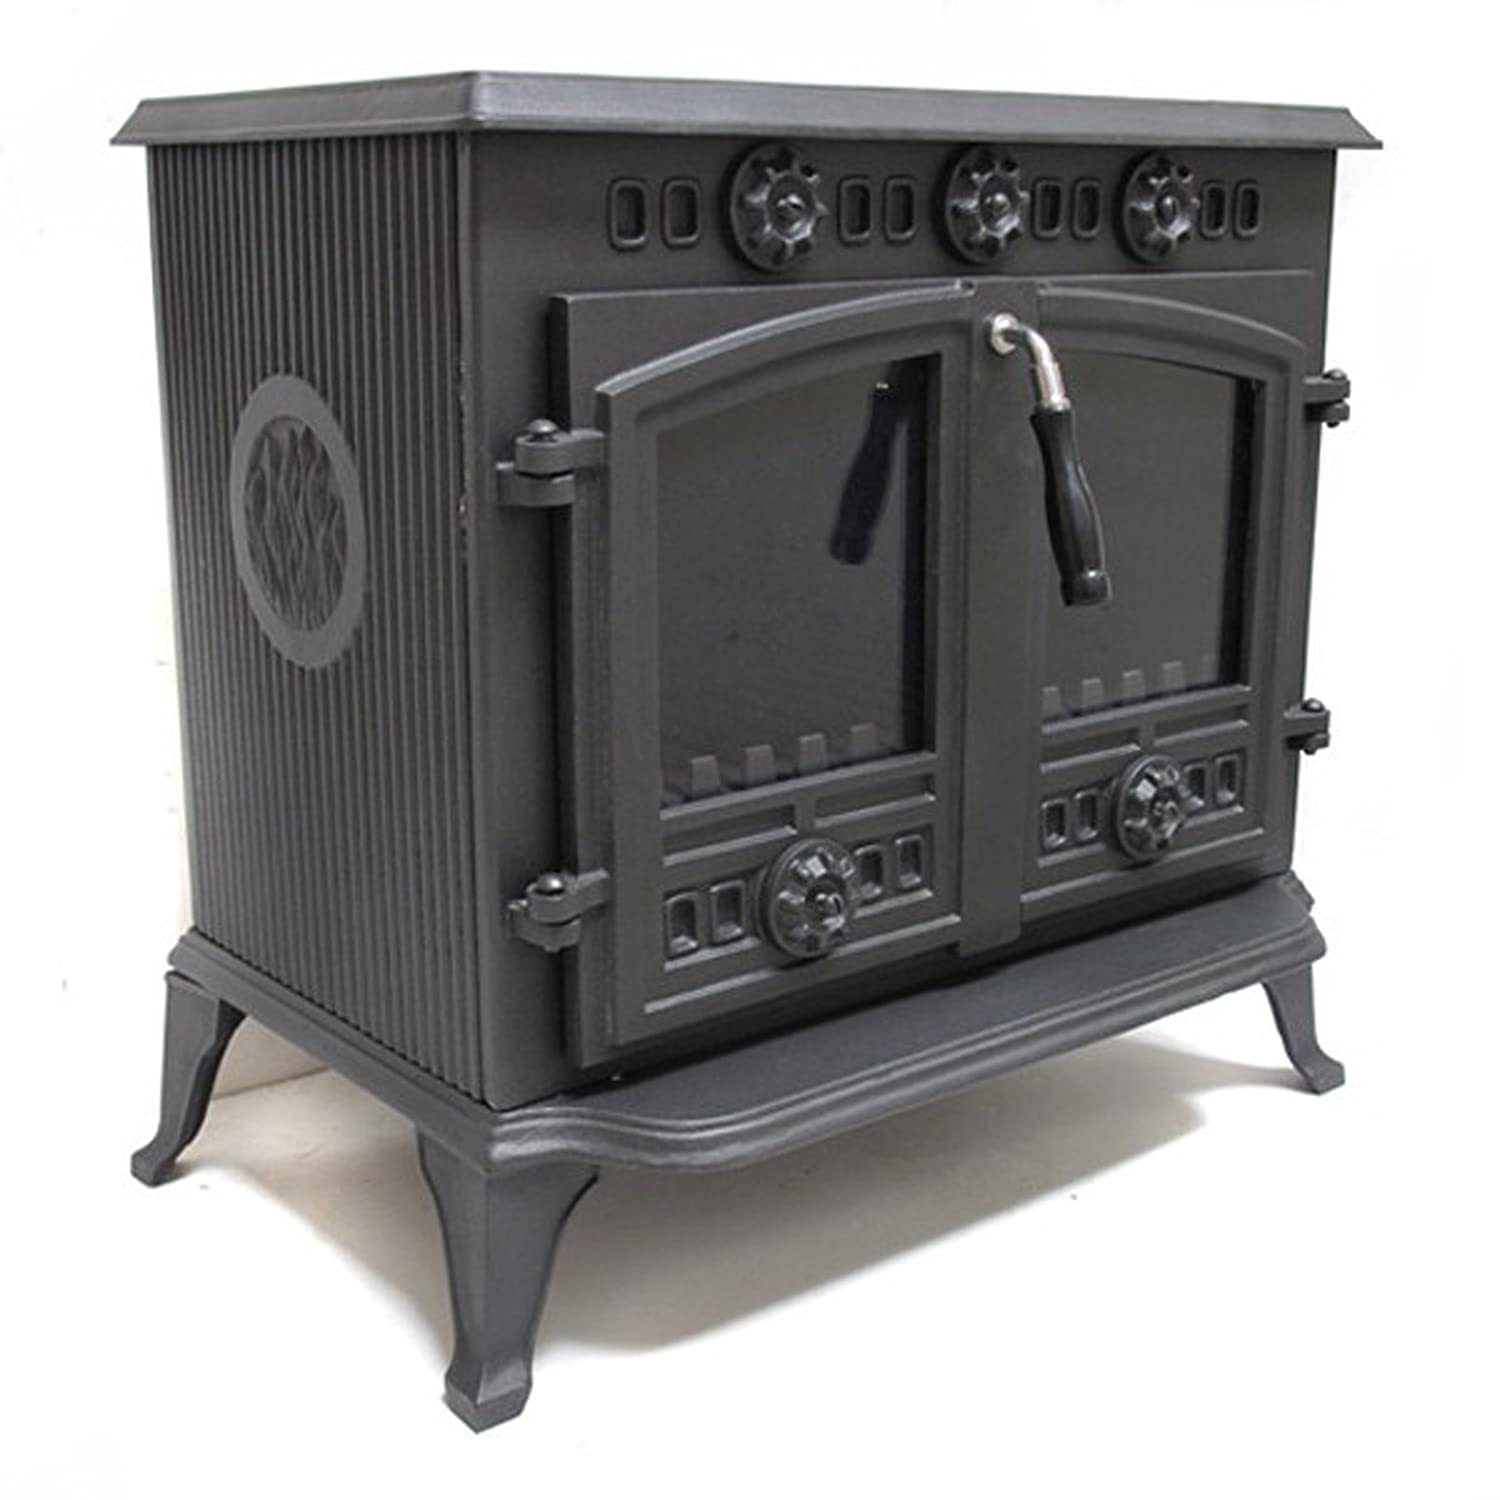 vortigern 12kw cast iron woodburning multifuel stove v006 genuine